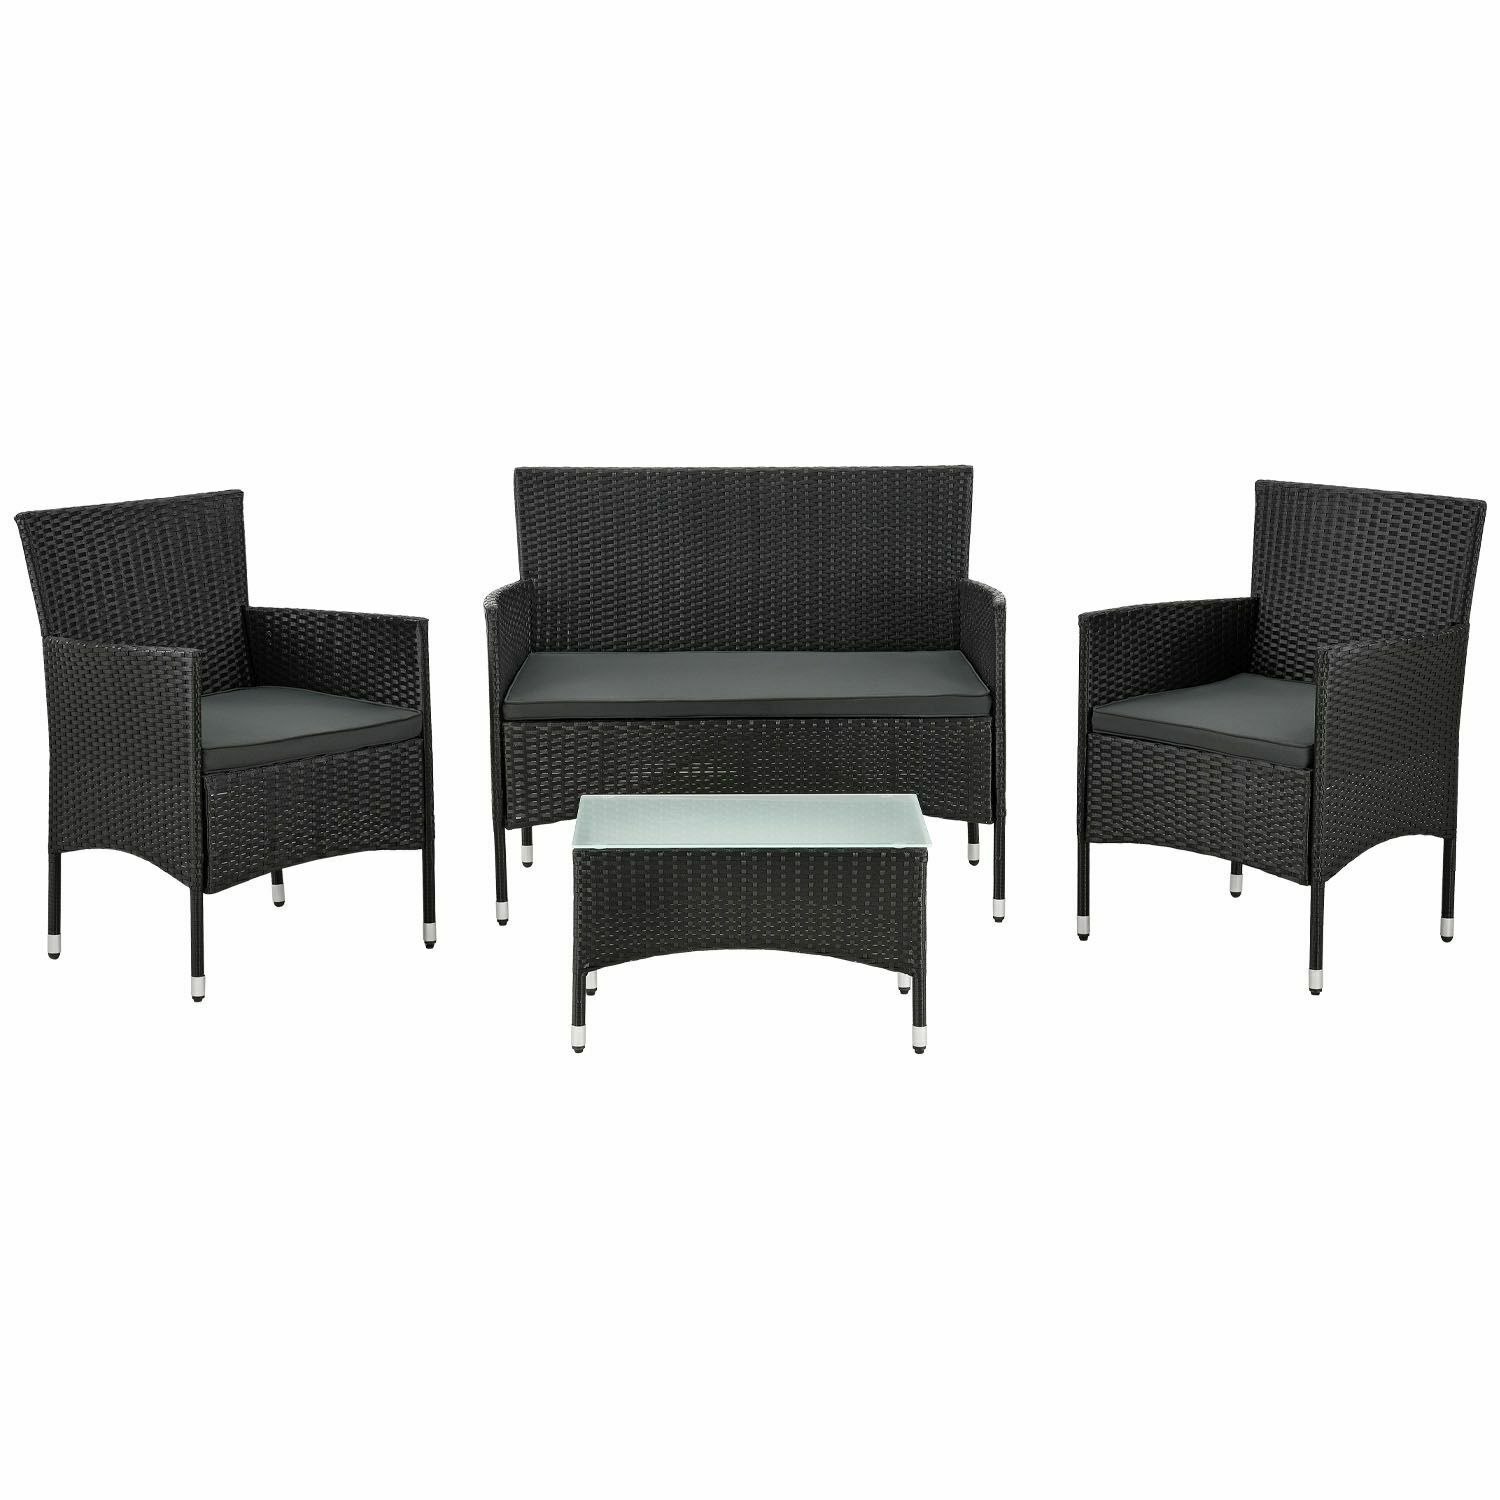 polyrattan gartenm bel lounge tisch sitzgruppe rattan poly schwarz dunkelgrau eur 114 95. Black Bedroom Furniture Sets. Home Design Ideas